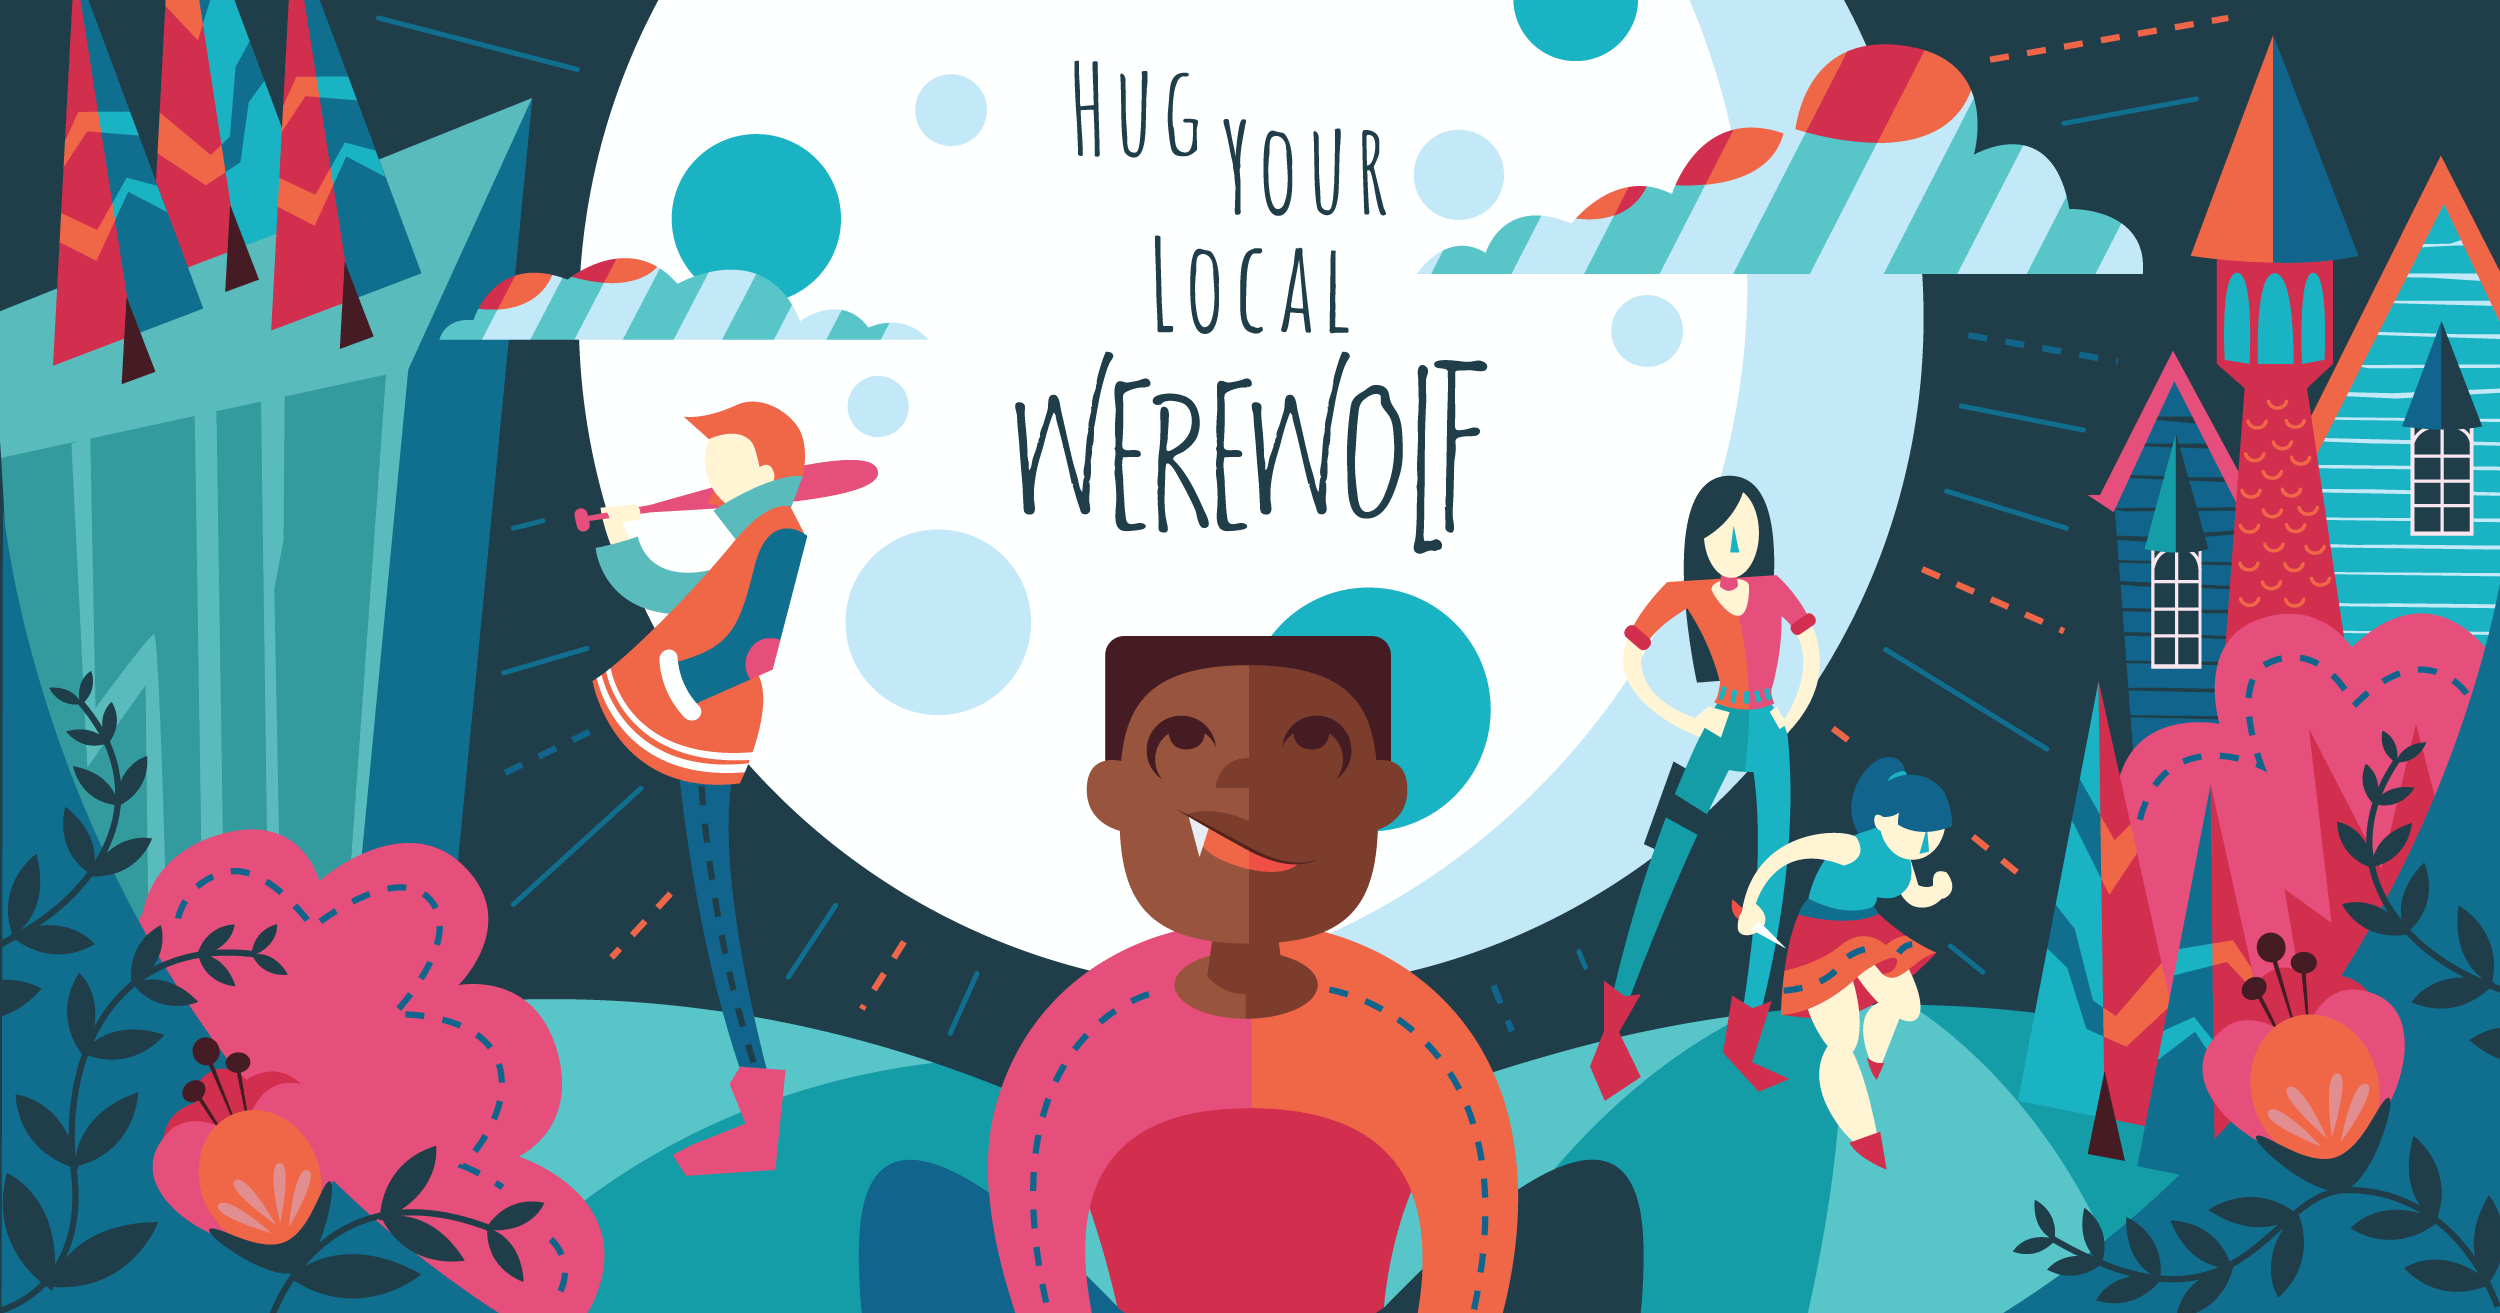 Hug Your Local Werewolf